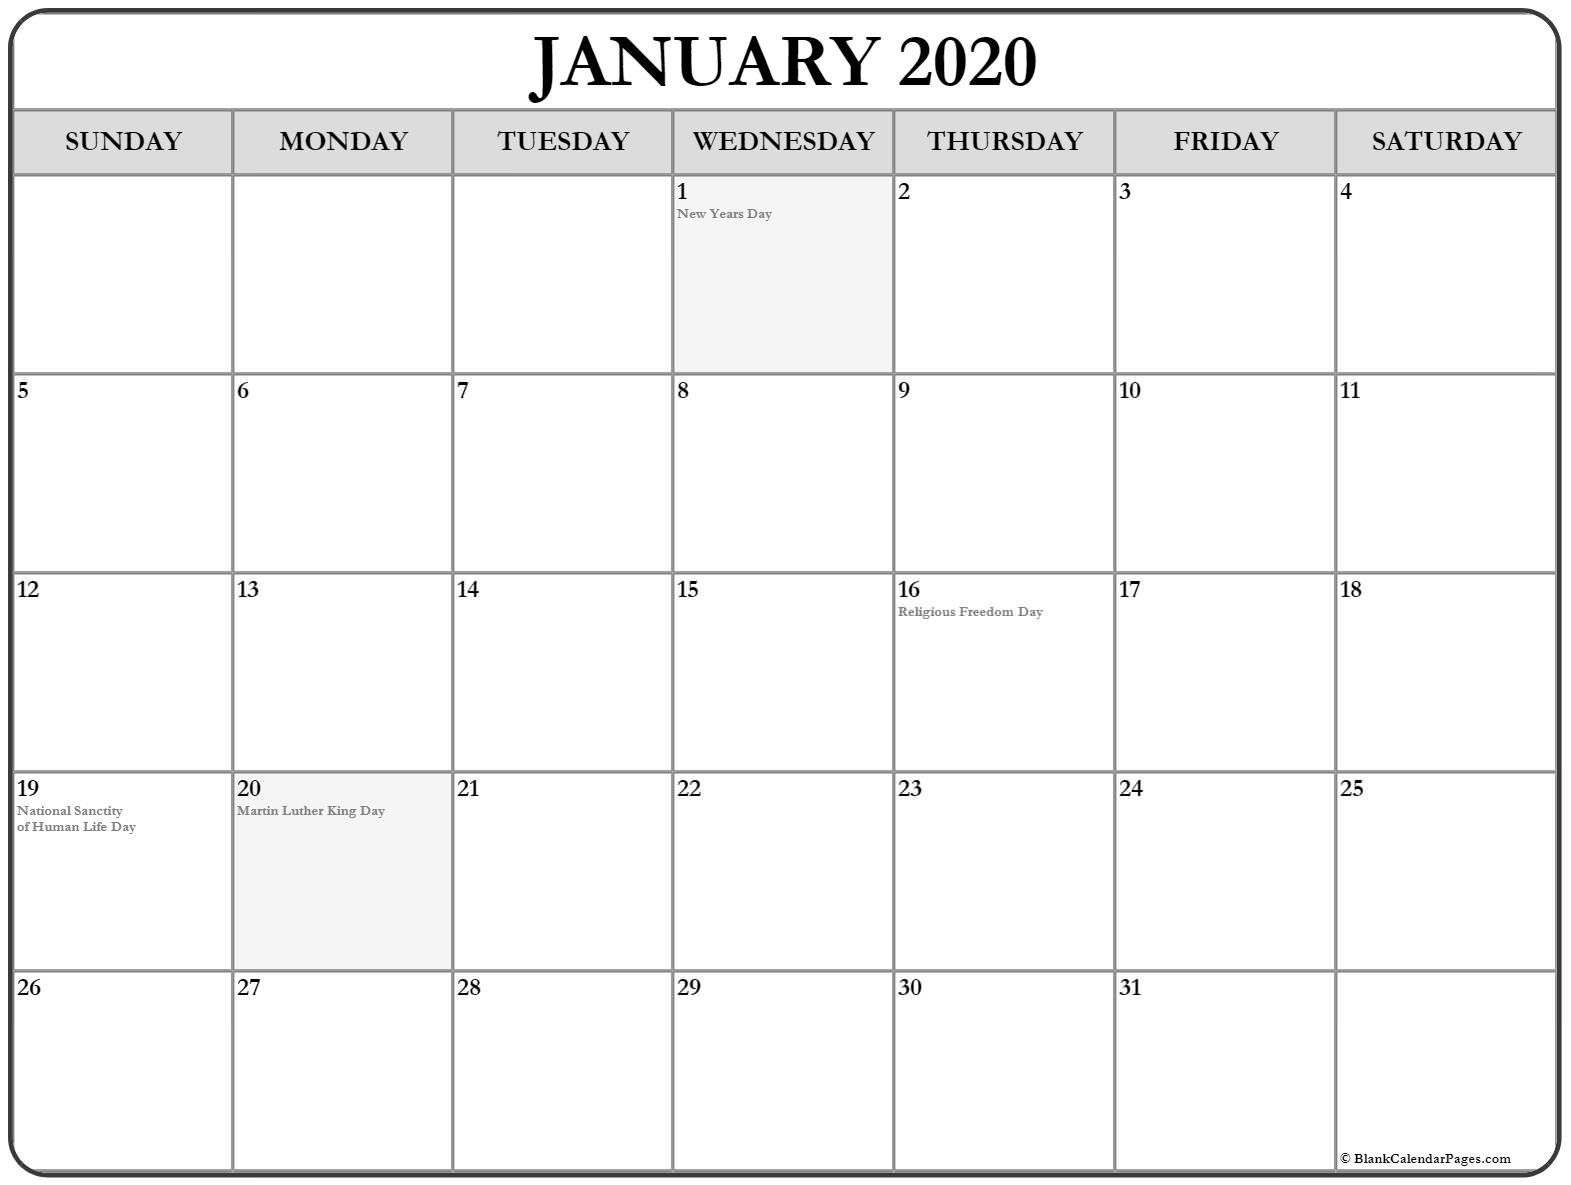 Collection Of January 2020 Calendars With Holidays-National Day Calendar January 2020